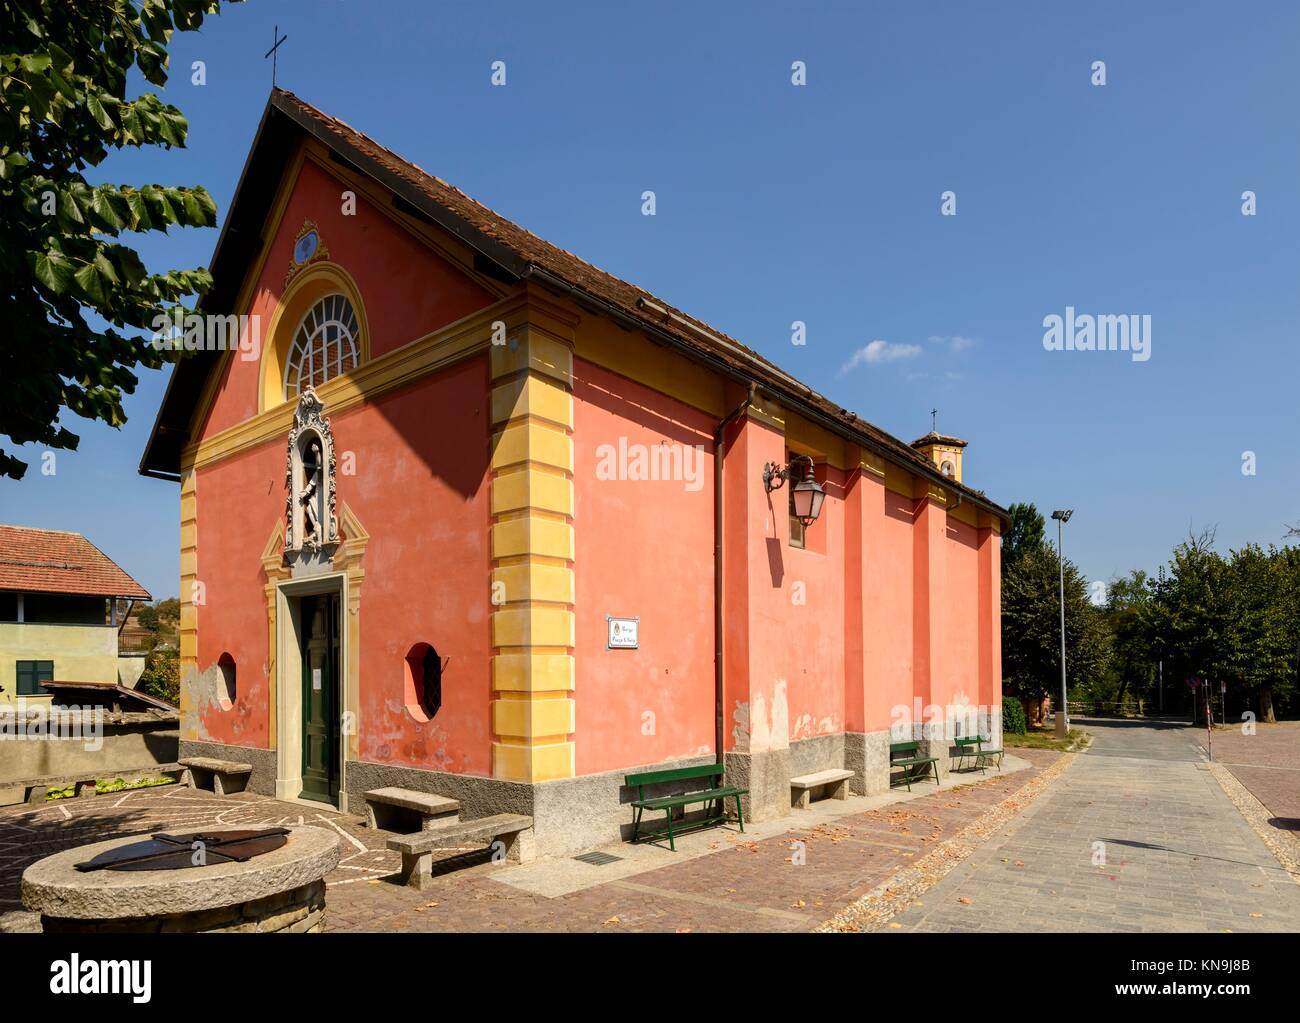 facade and side view of ancient small church of san Rocco in Sasello village, Ligure inland, Italy. Stock Photo